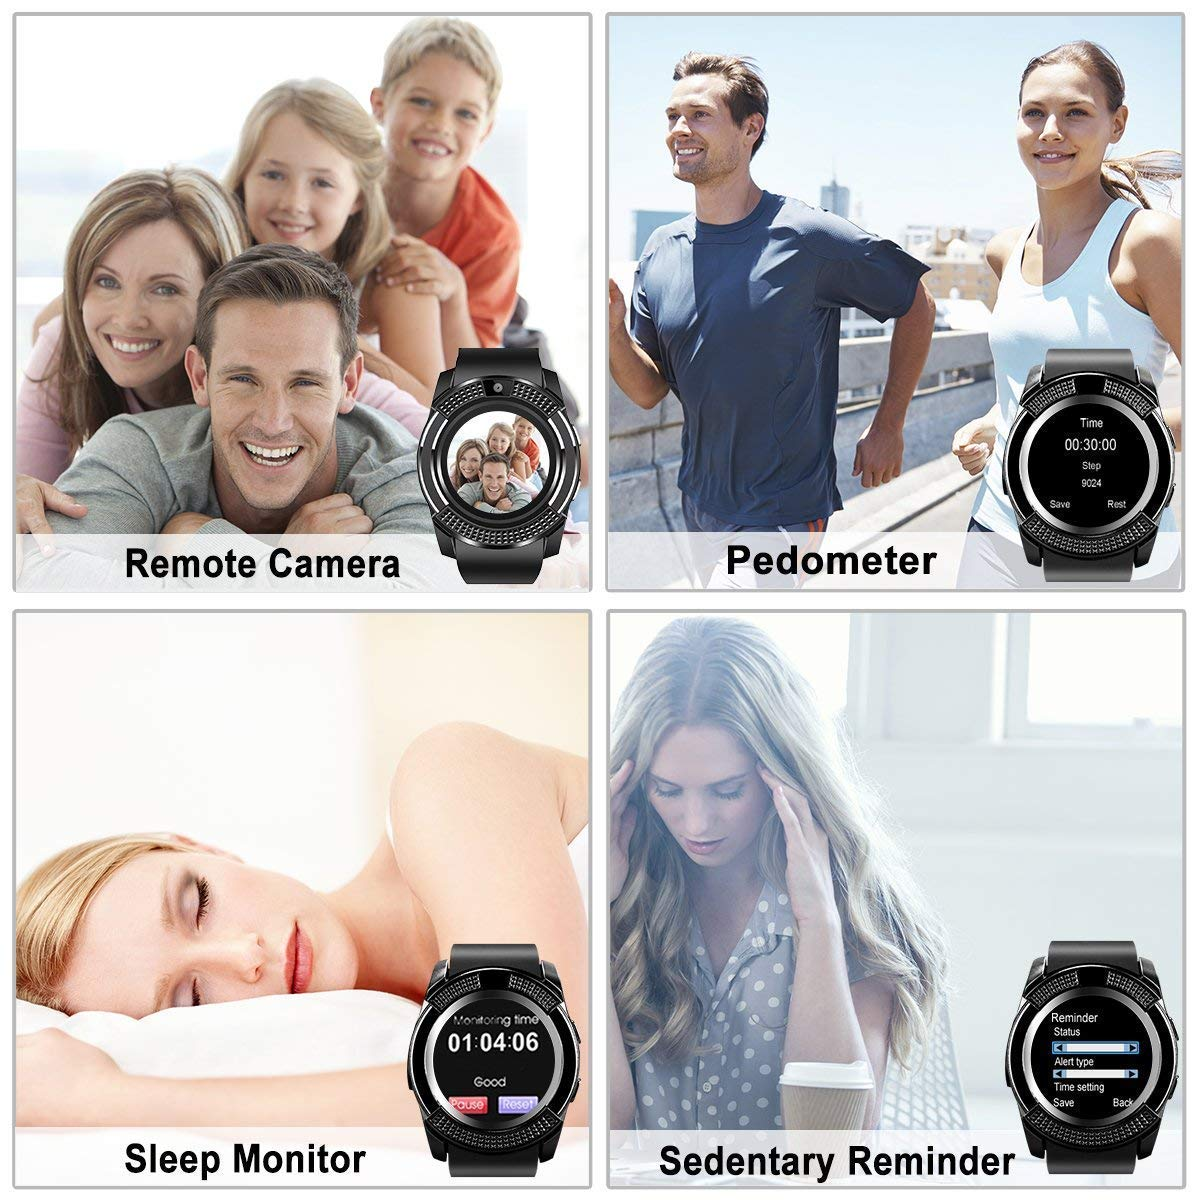 Smart Watch,Bluetooth Smartwatch Touch Screen Wrist Watch with Camera/SIM Card Slot,Waterproof Phone Smart Watch Sports Fitness Tracker Compatible Android Phones Black by Topffy (Image #3)